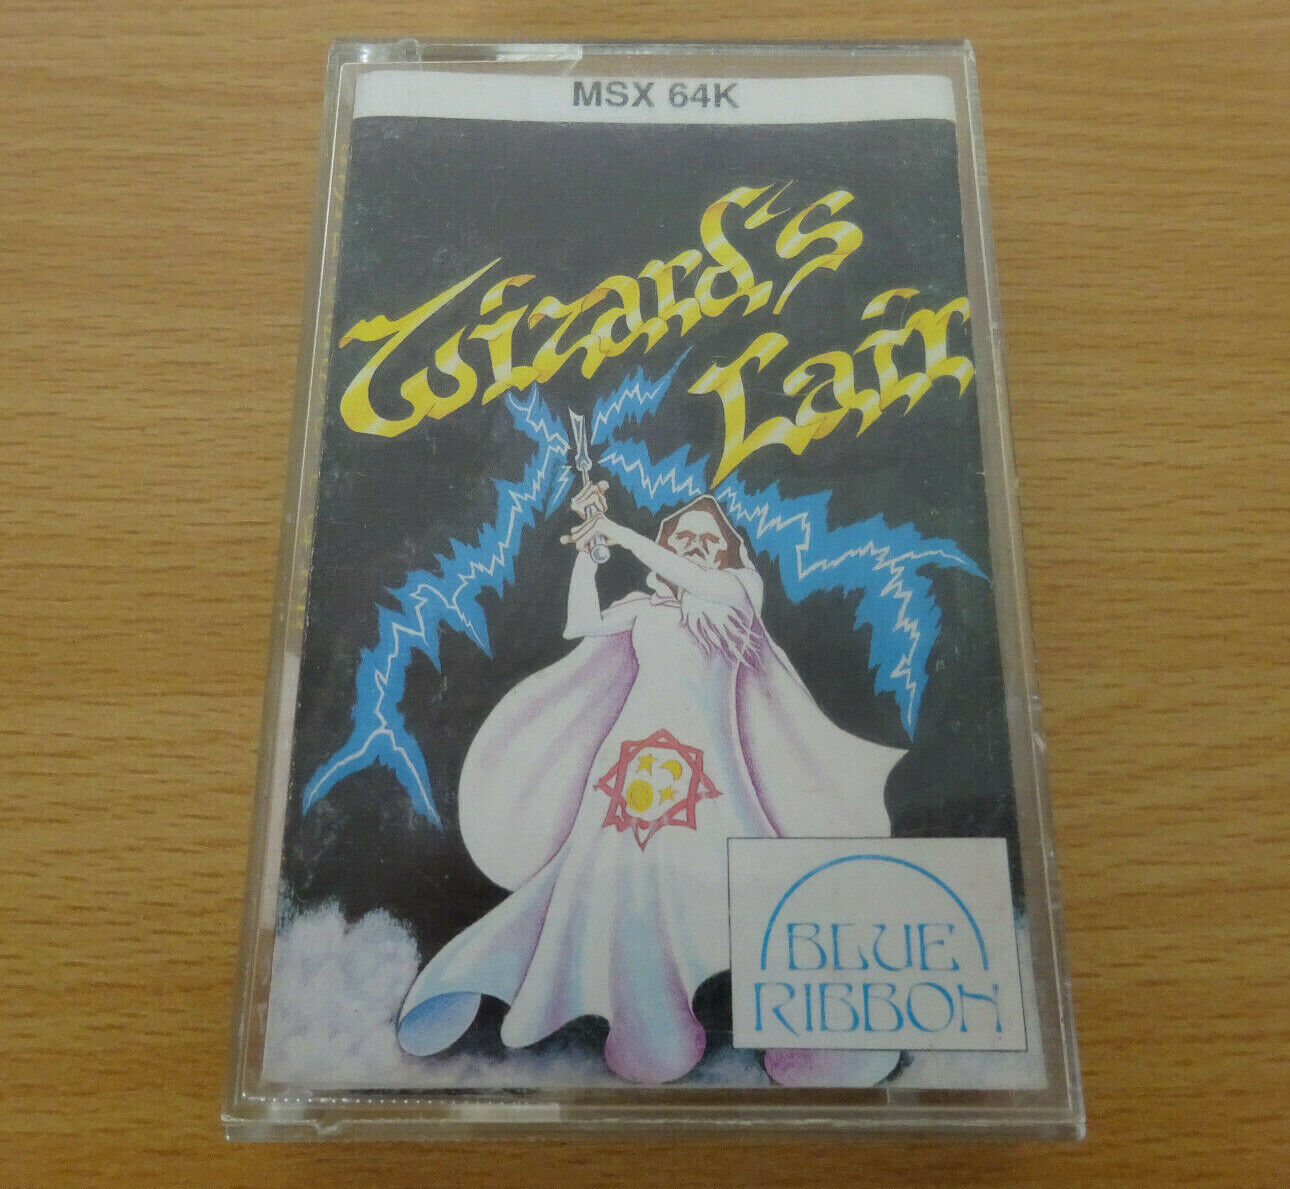 retro computer games - WIZARDS LAIR - MSX 64K Rare Computer Game Vintage Retro